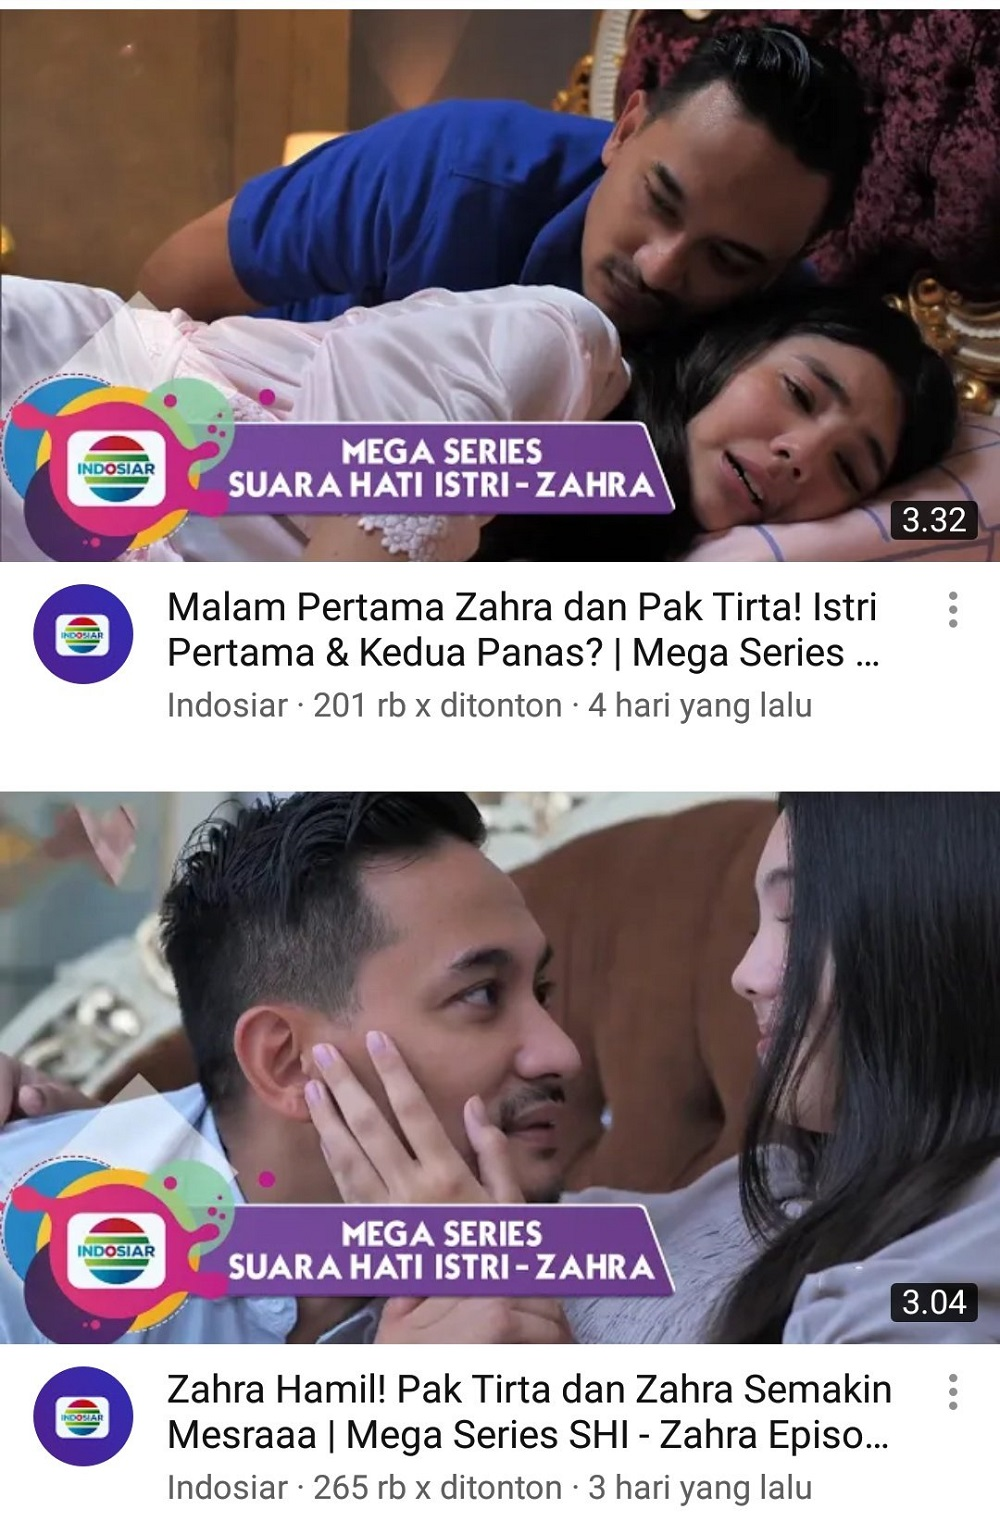 The videos are no longer available on Indosiar's YouTube channel but garnered more than 200,000 views while they were still up. — Screengrab via YouTube/Indosiar